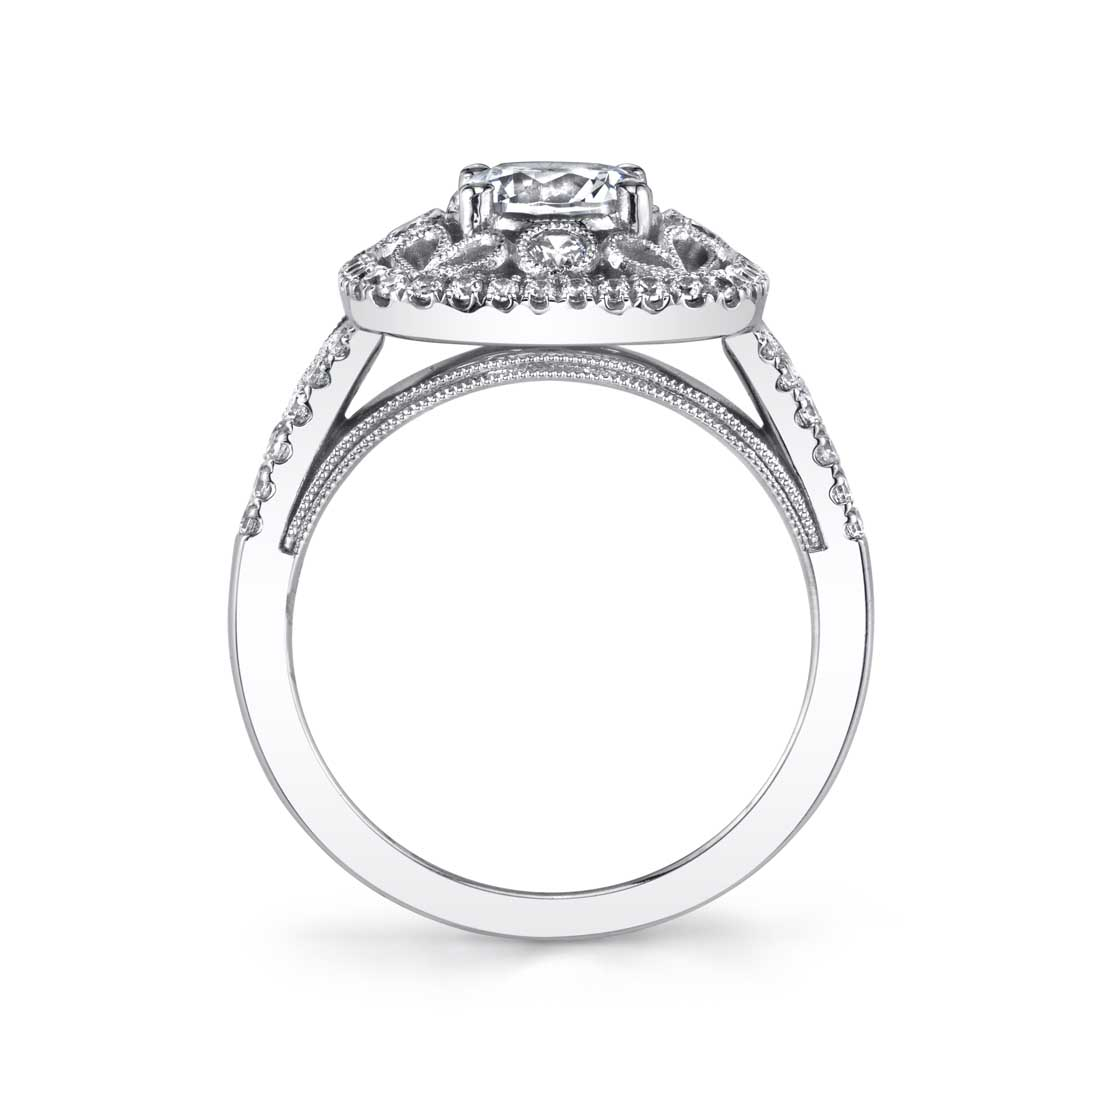 Sylvie - Elita Special Edition Vintage Engagement Ring